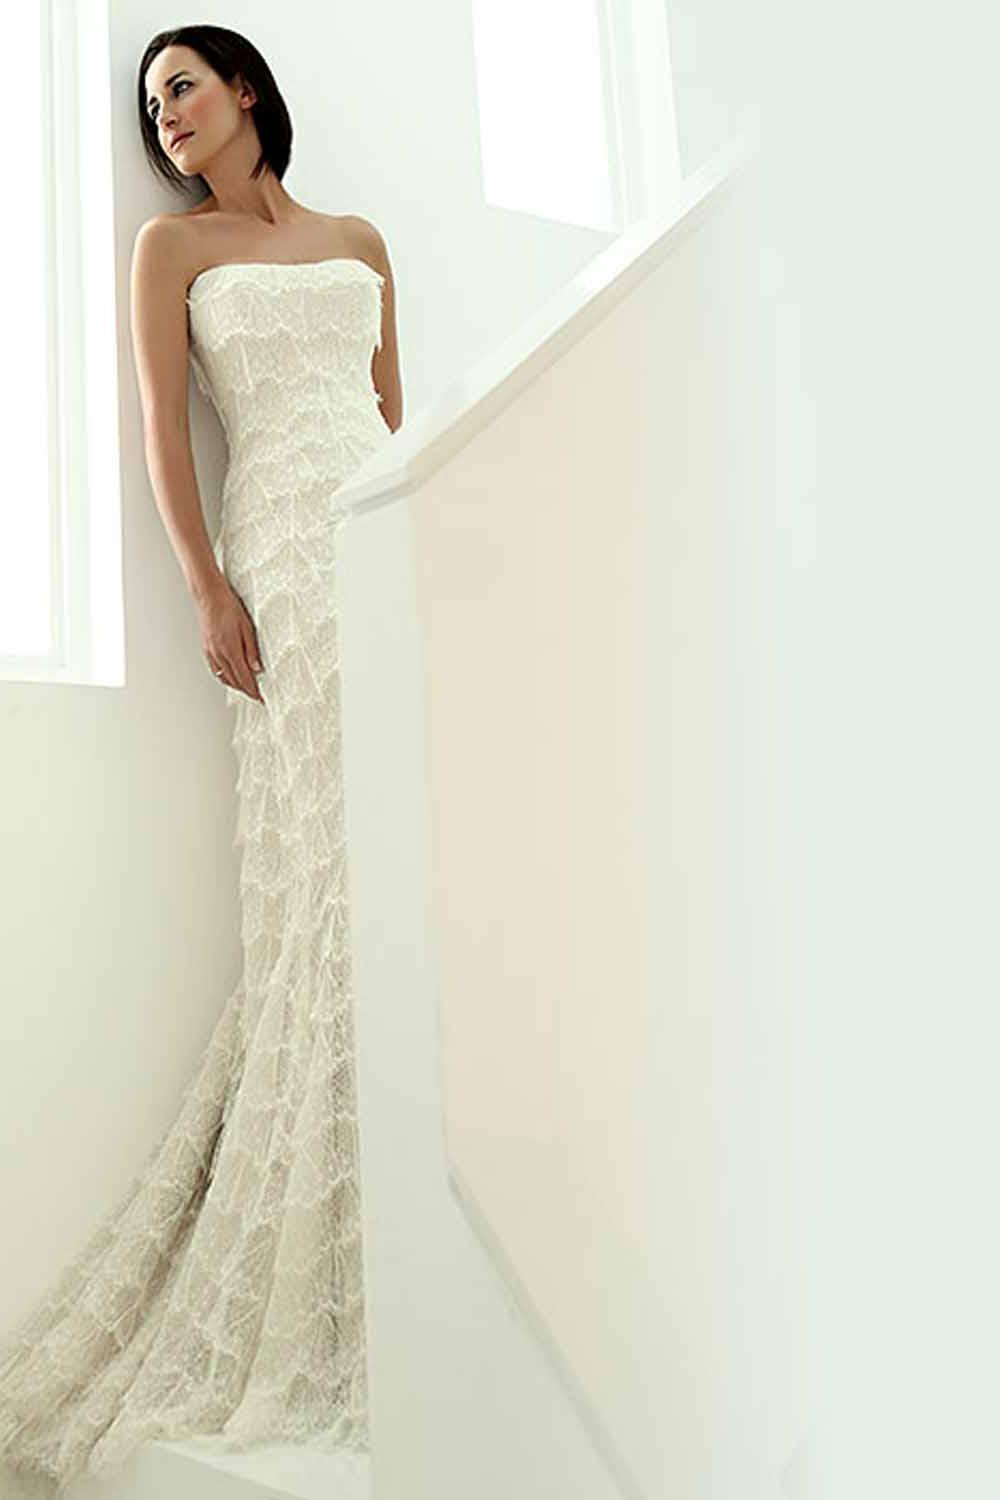 Modern Irish Wedding Dresses : Modern irish wedding dresses related keywords suggestions